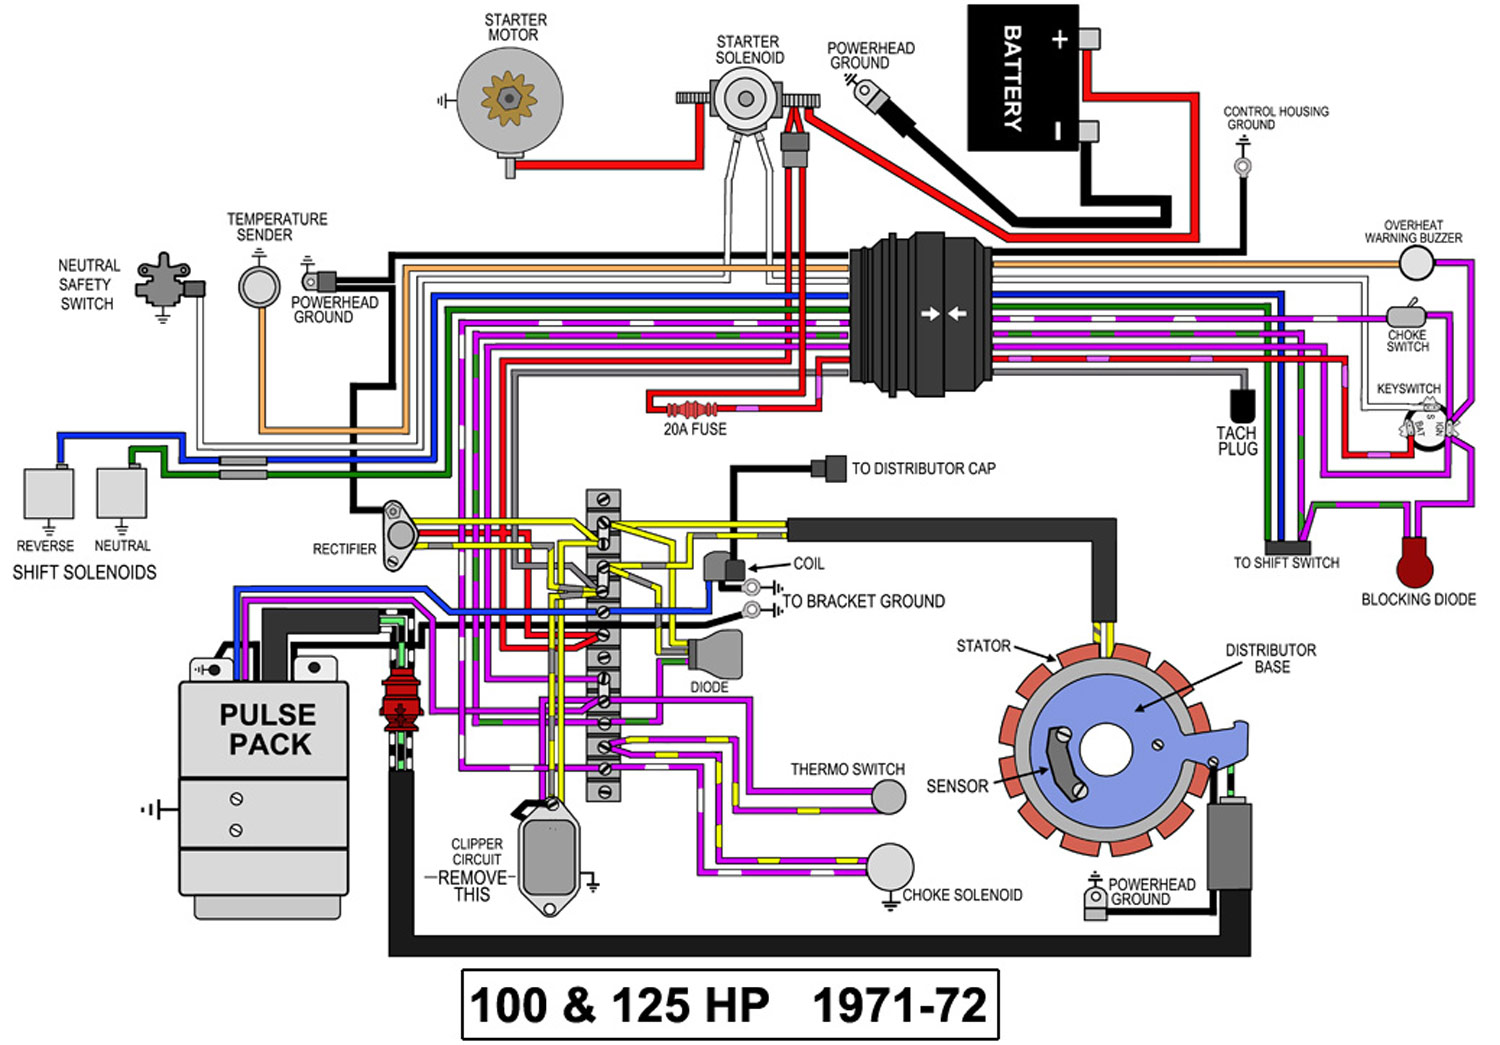 evinrude johnson outboard wiring diagrams -- mastertech ... honda outboard ignition switch wiring diagram #4